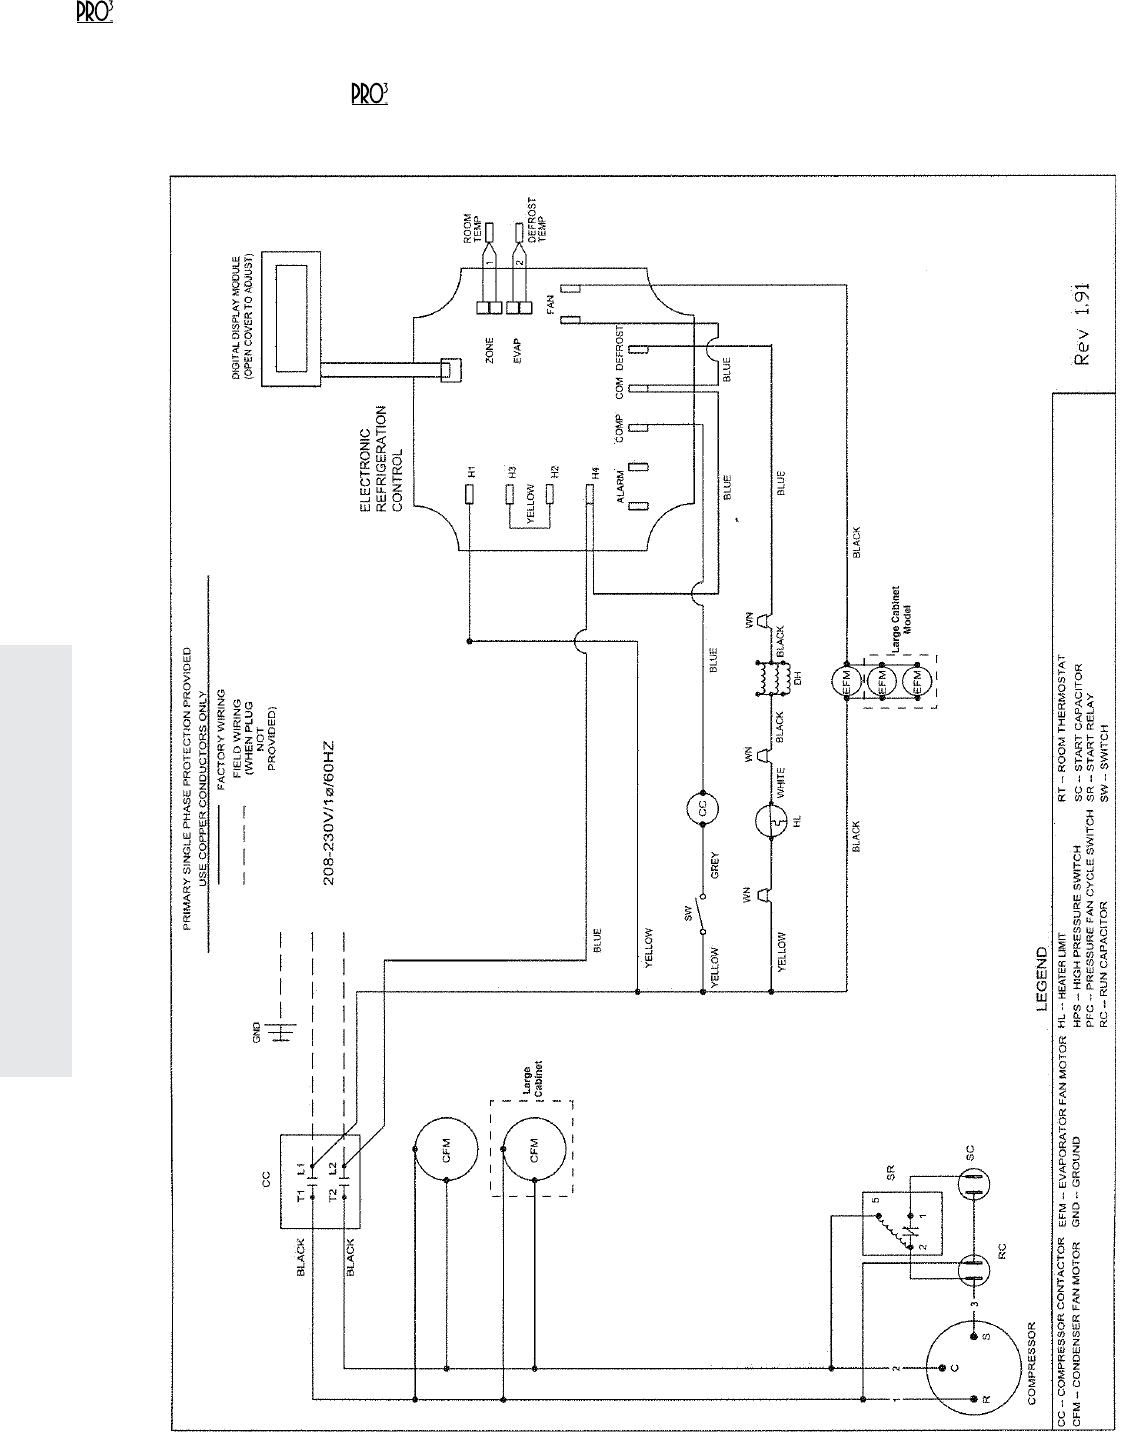 b8616a9a 7649 411a b648 d6245cba7e20 bg10 page 16 of heatcraft refrigeration products refrigerator h im 82b heatcraft freezer wiring diagram at webbmarketing.co